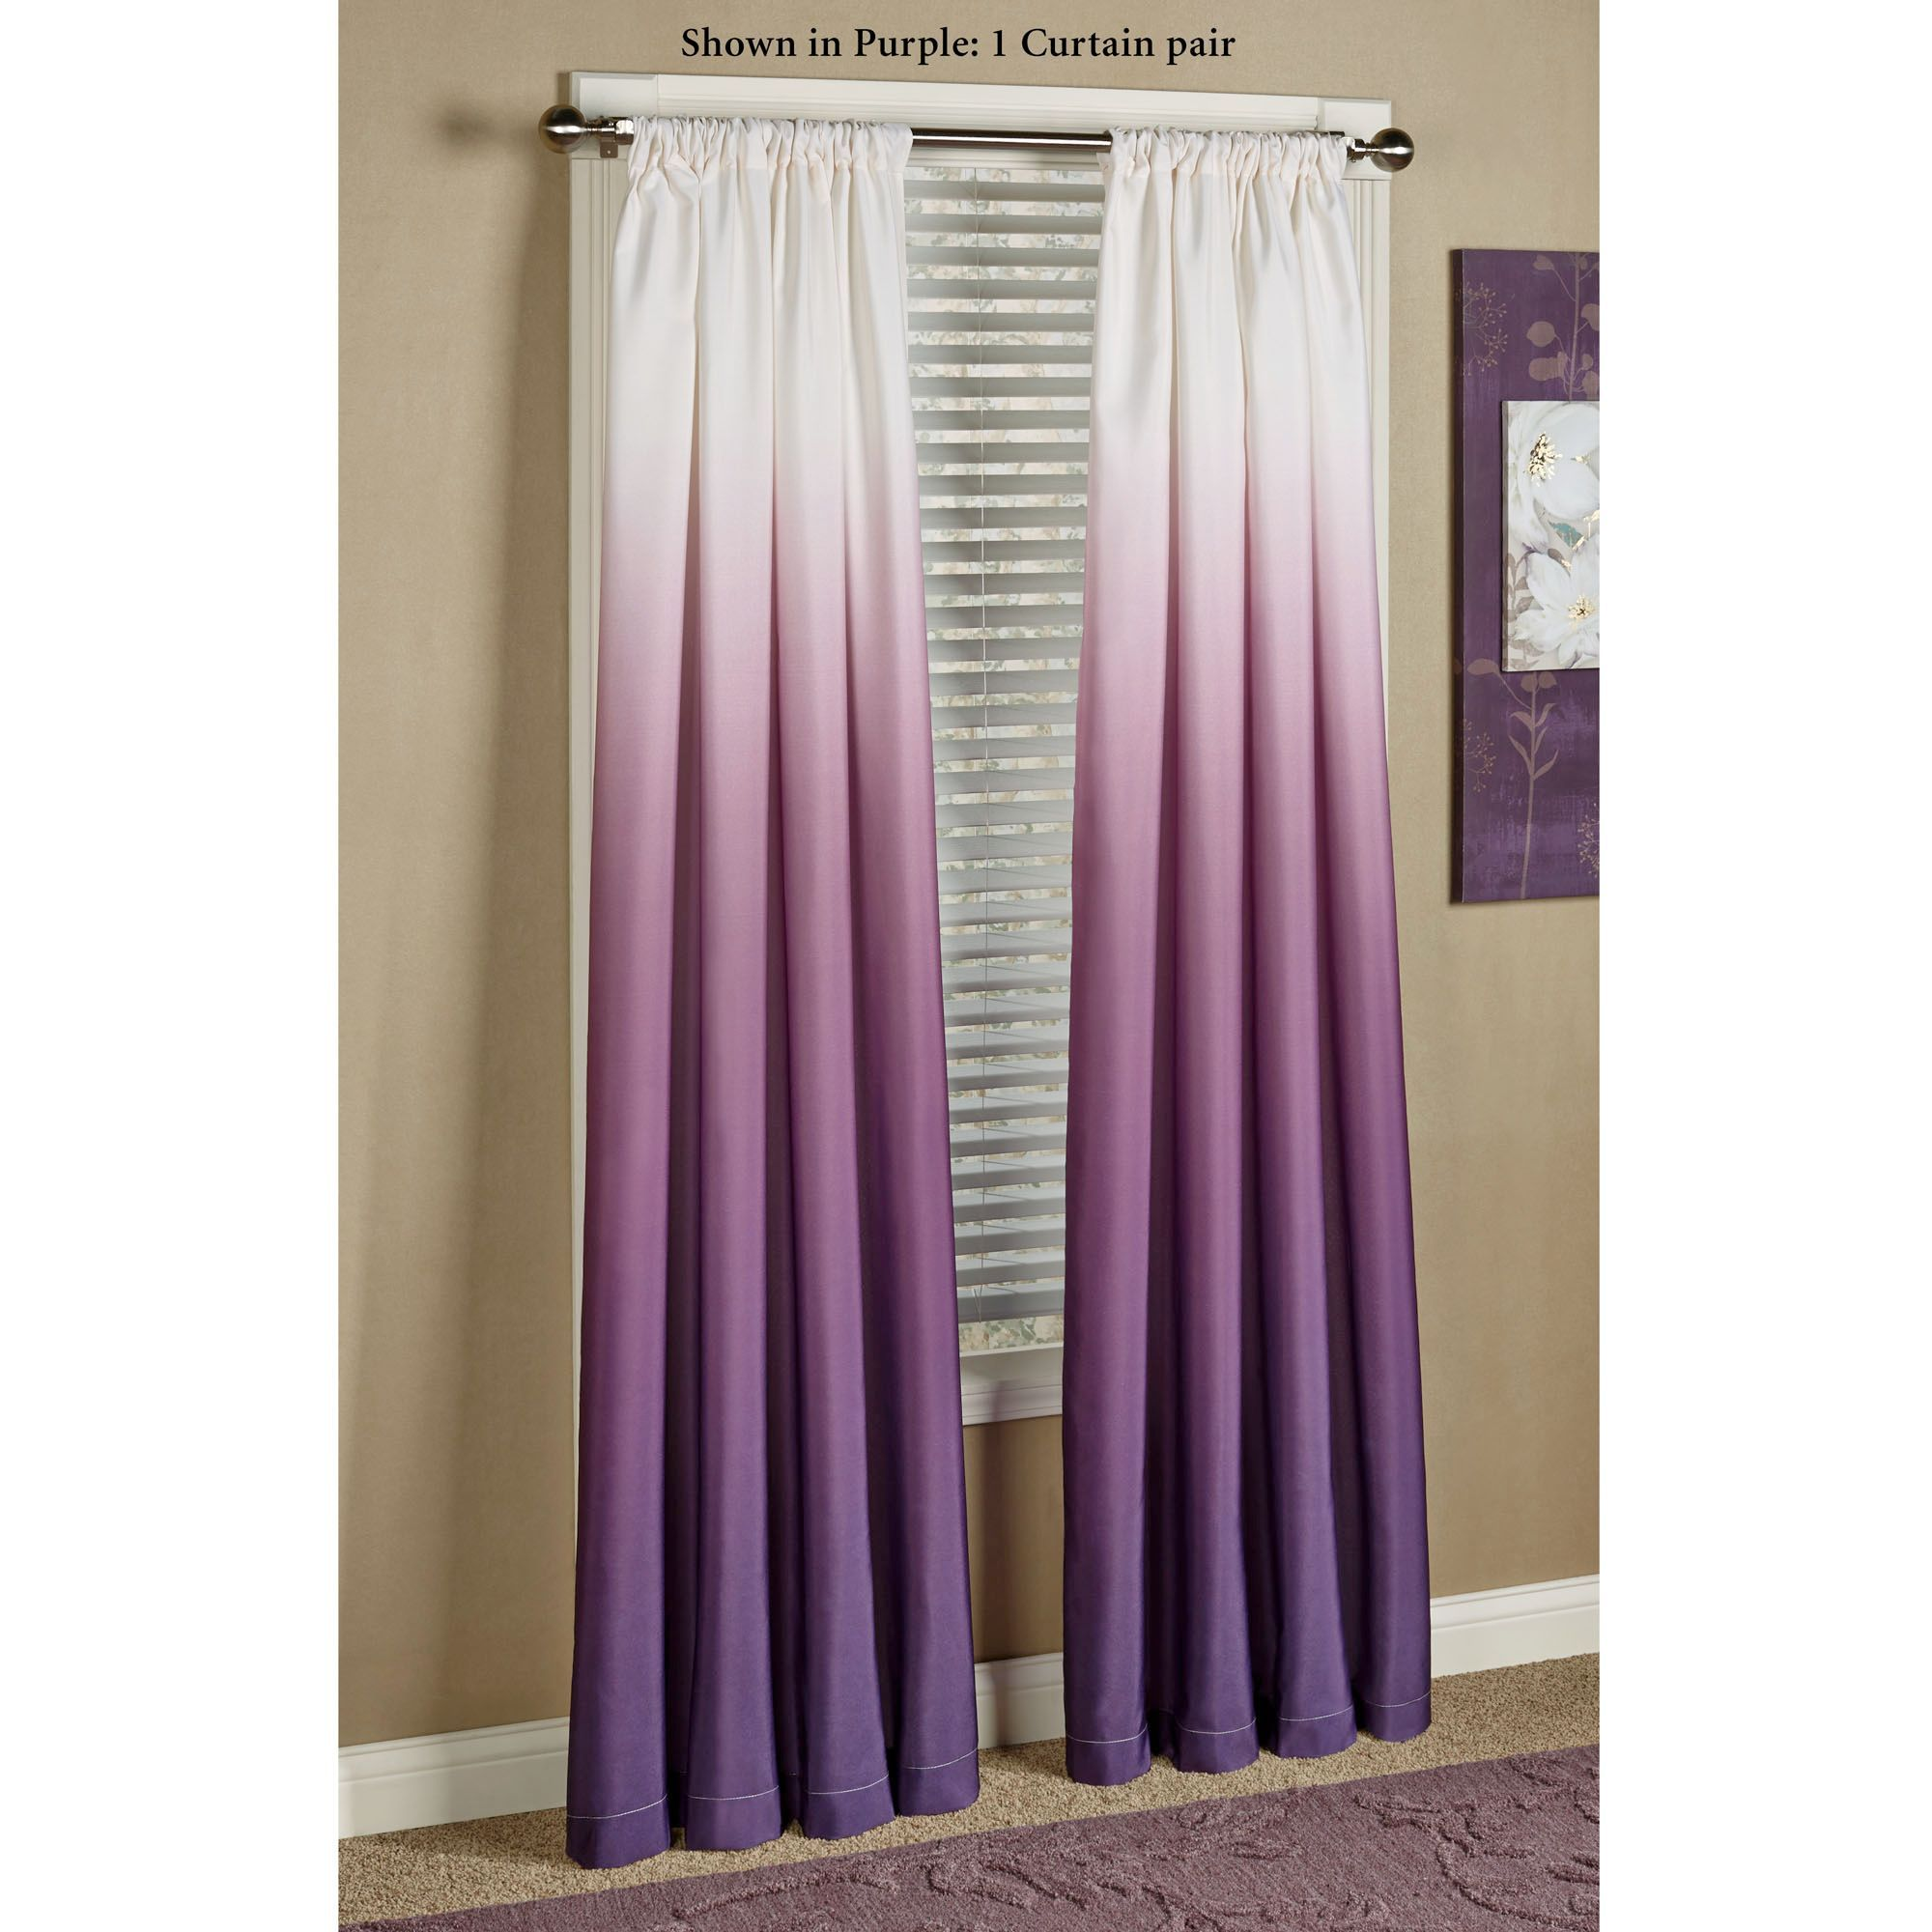 drape curtain fresh new inspirational and curtains furniture bedroom purple blush pipe of